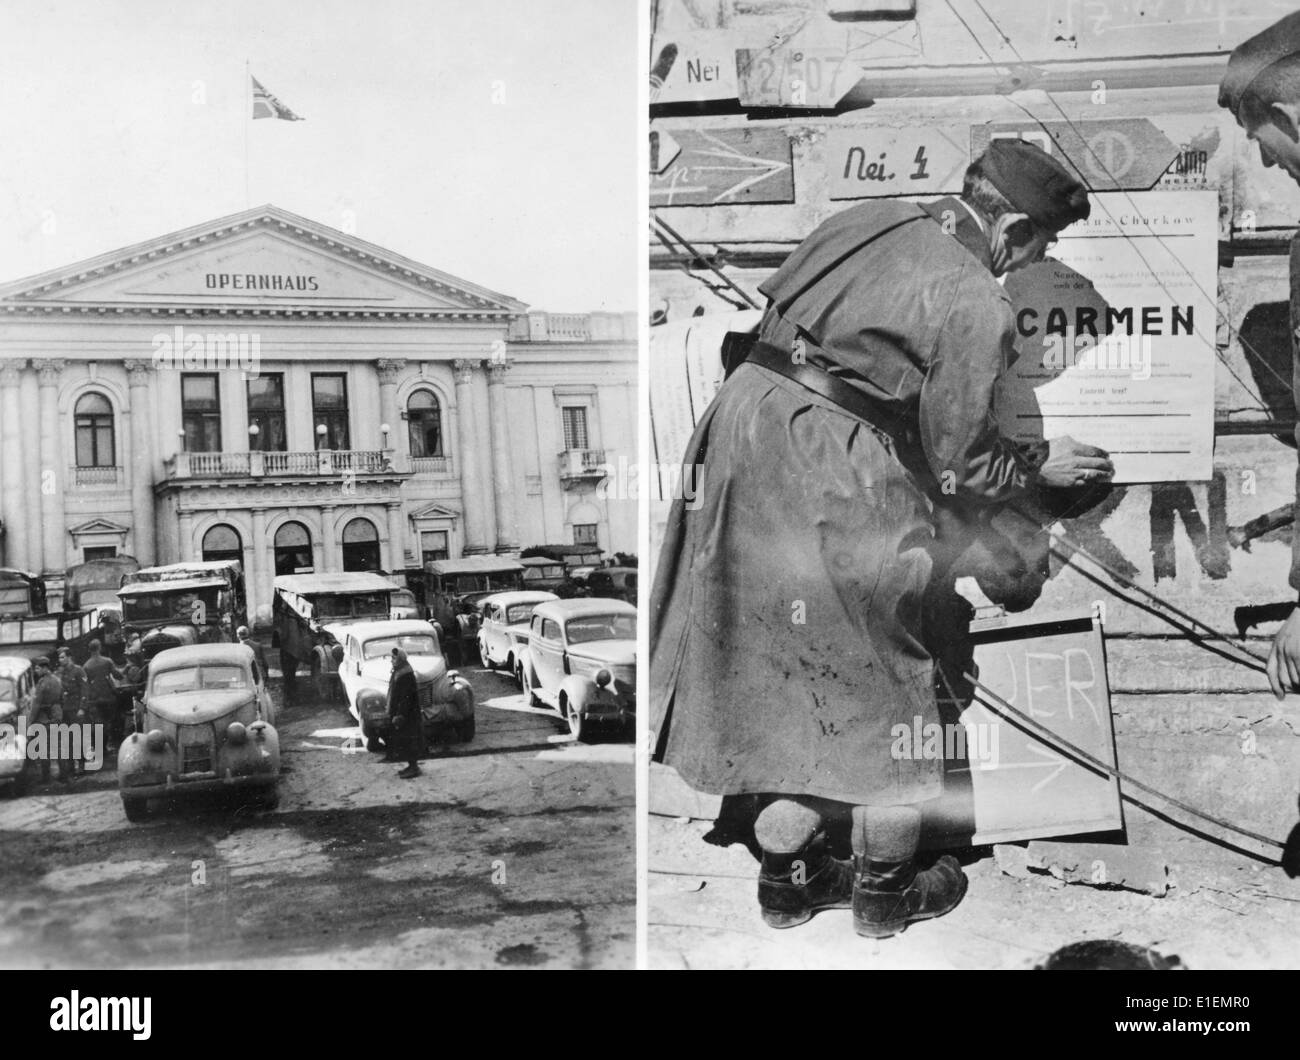 Propaganda text! from Nazi news reporting on the back of the picture: 'Carmen in Kharkiv. Few days already after the recapture of Kharkiv by German troops the opera house opens its doors for the field grey visitors who are arriving in flocks. - Our picture shows the opera house (left) with the German Imperial War Flag flying above it; on the right we see soldiers of a propaganda company, who put up posters in various parts of the city which announce a performance of Bizet's 'Carmen'.' Picture taken at the Eastern Front and published on 12 May 1942. (Flaws in the quality due to the historic pic - Stock Image